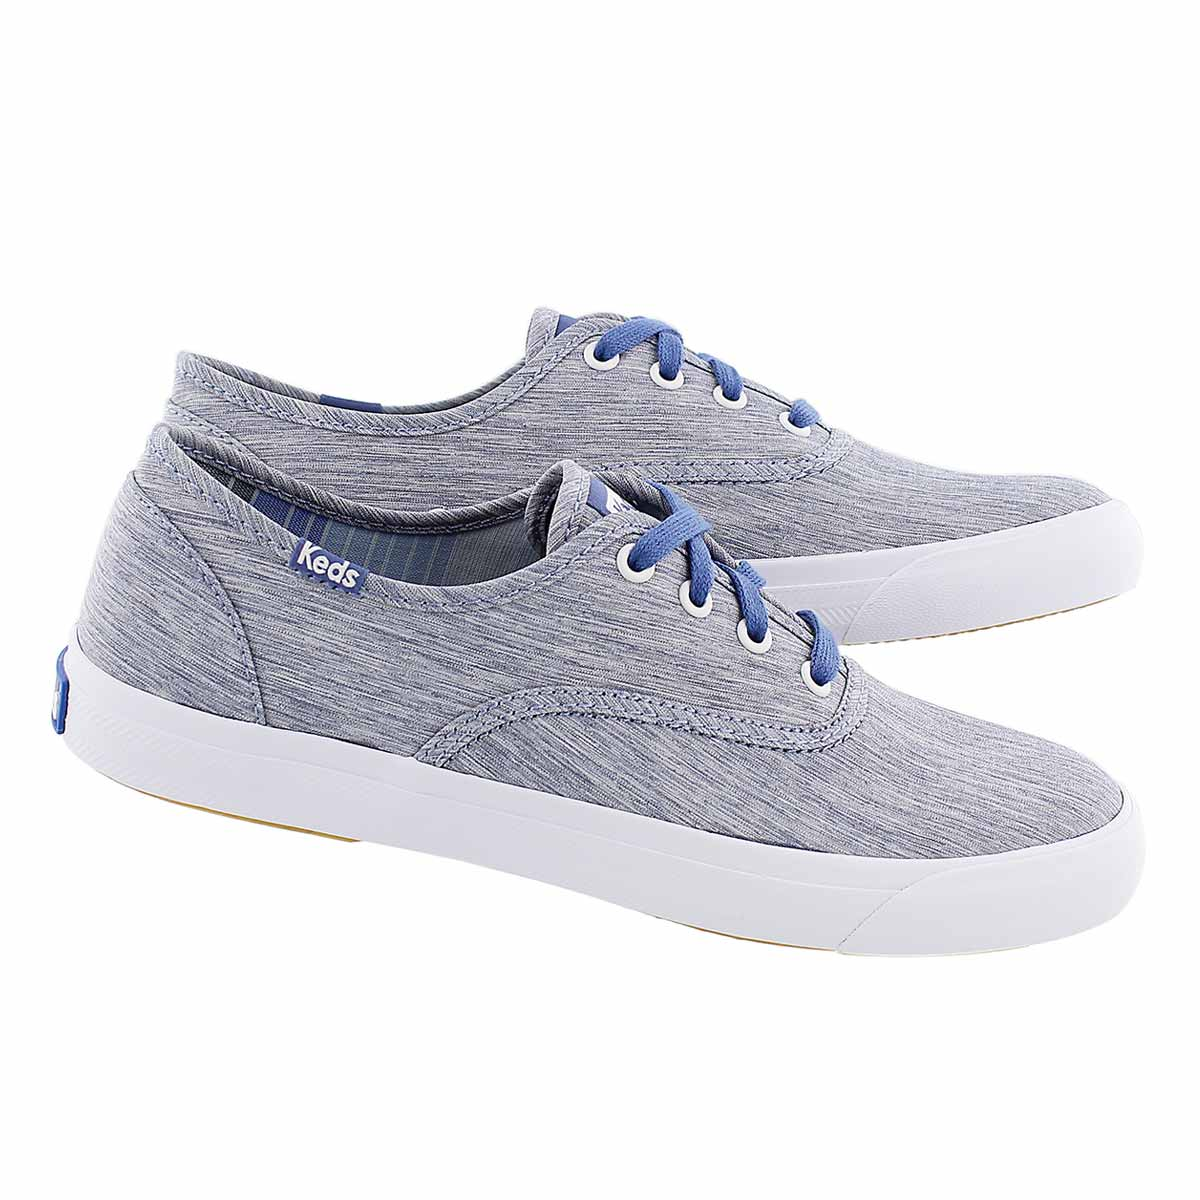 Lds Triumph blue fashion sneaker